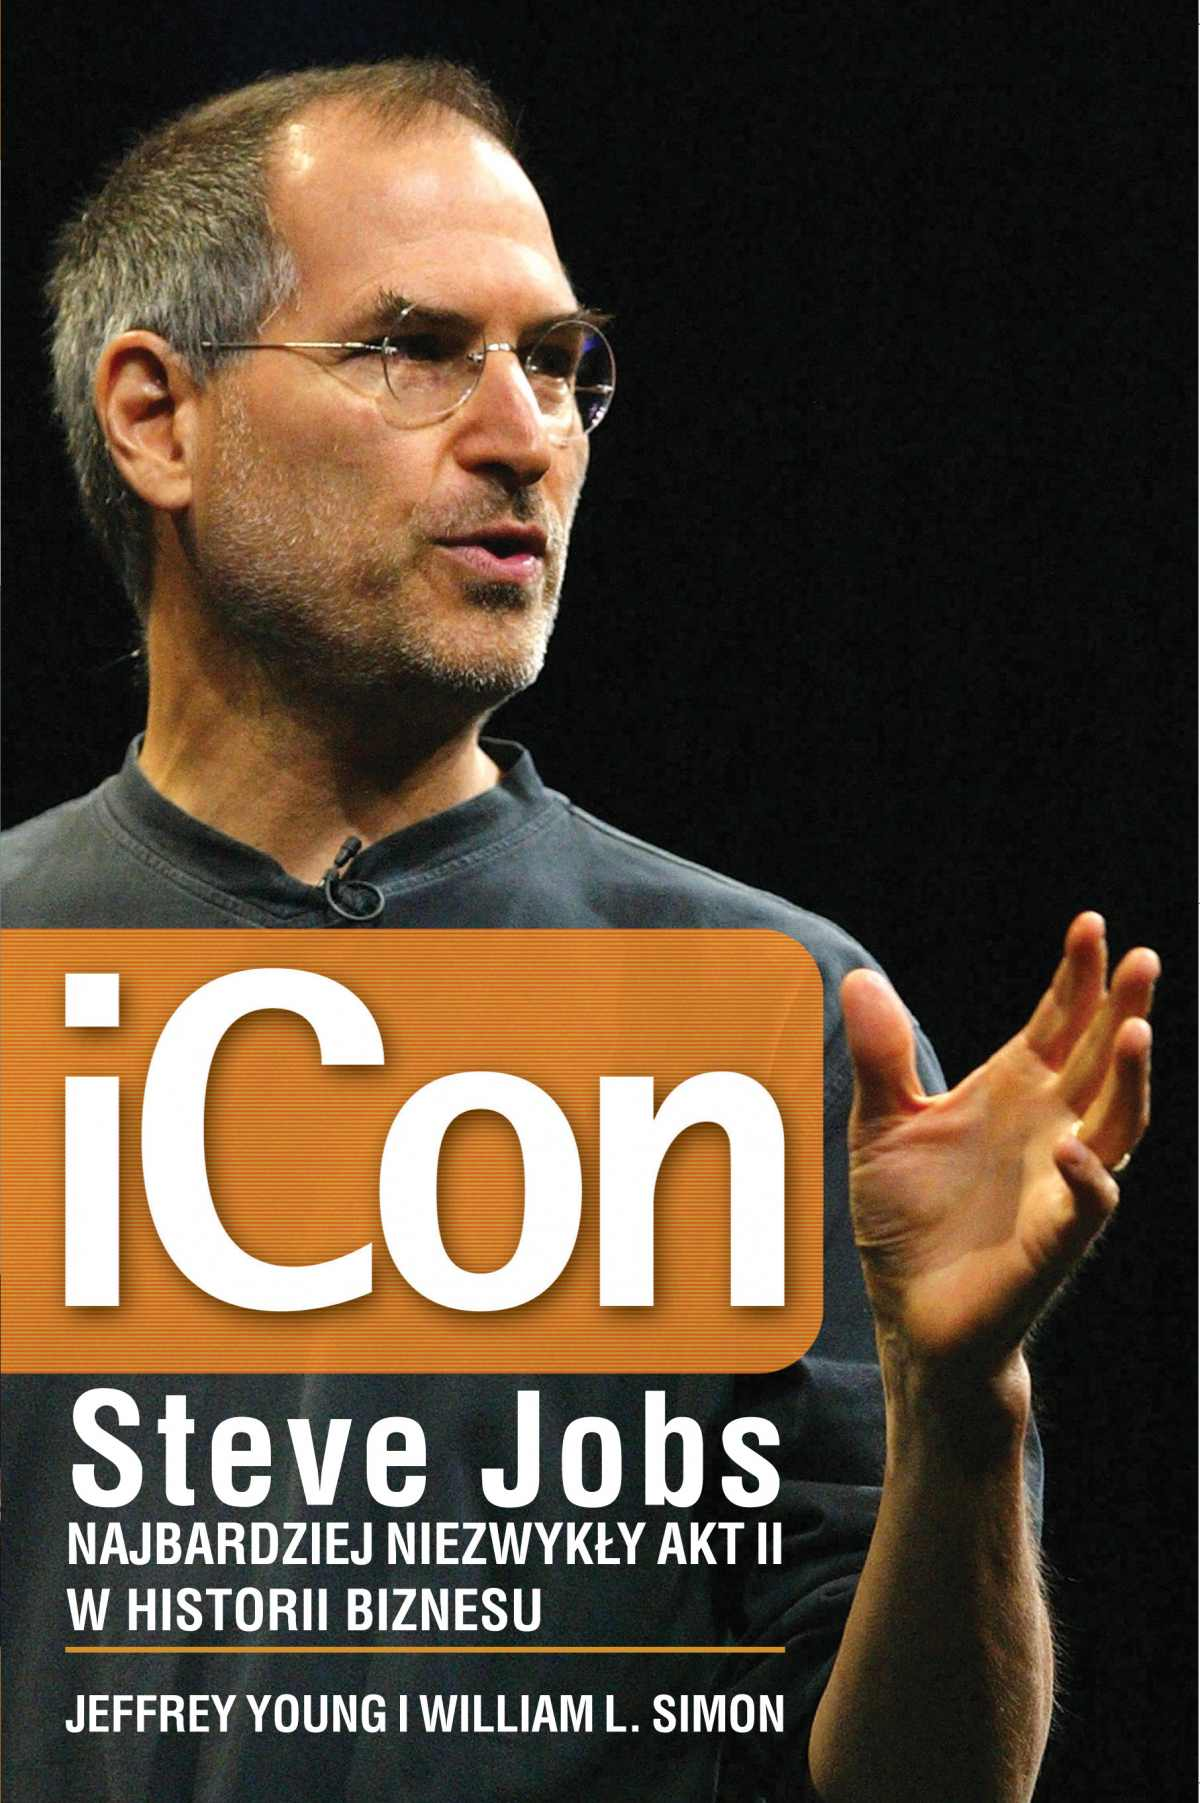 Steve Jobs Ebook Epub